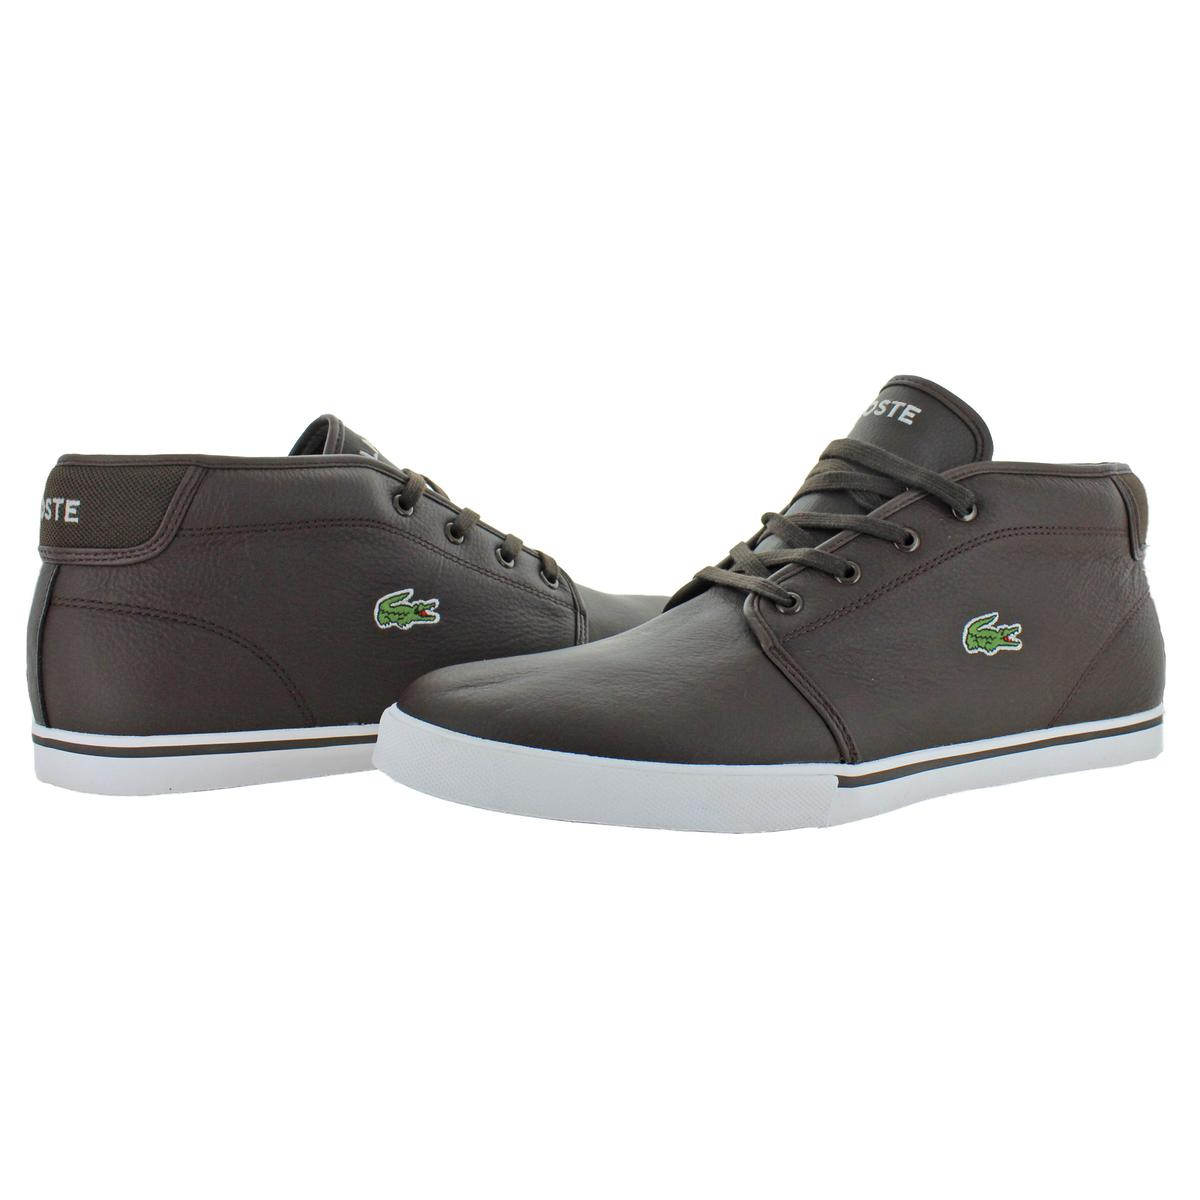 Lacoste-Men-039-s-Ampthill-Leather-Chukka-Mid-Top-Fashion-Sneakers-Shoes thumbnail 3